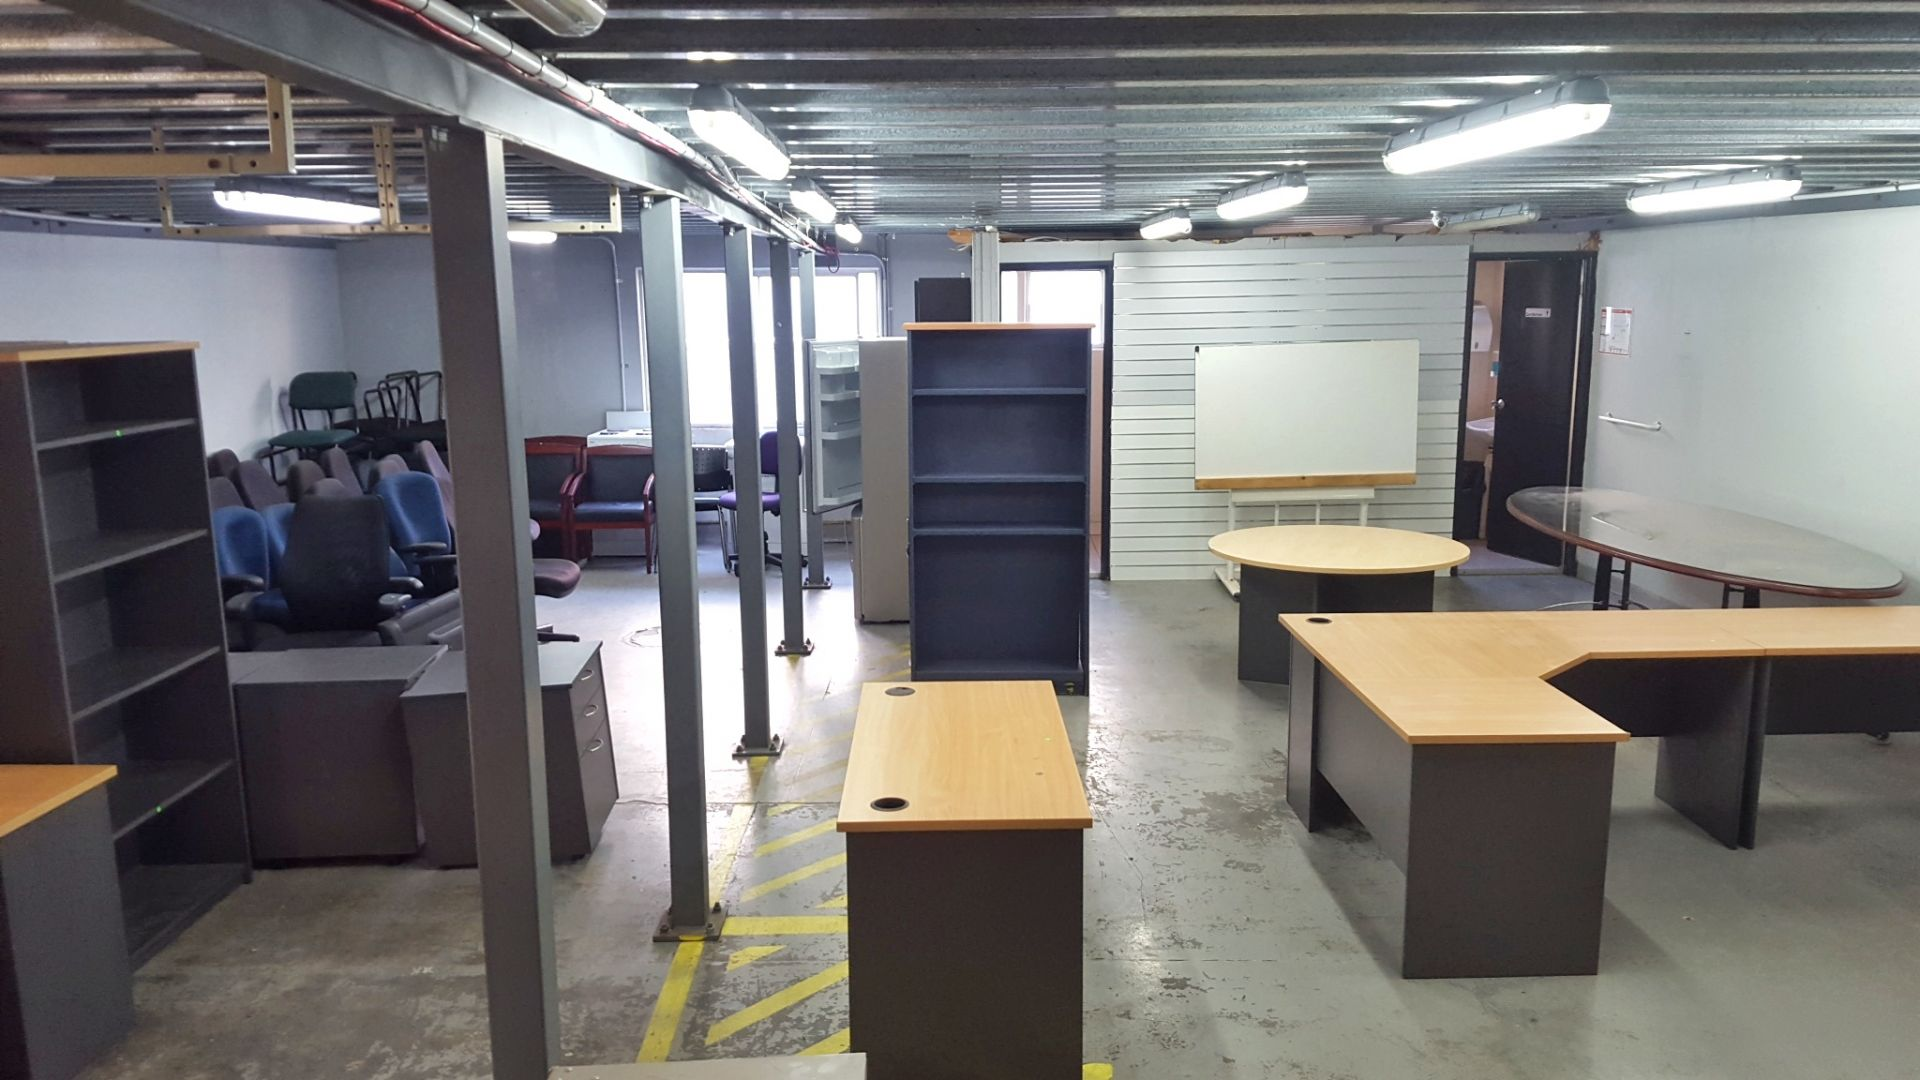 CENTRAL188m2 WAREHOUSE UNIT  - WITH OPTIONAL EXTRA OFFICE